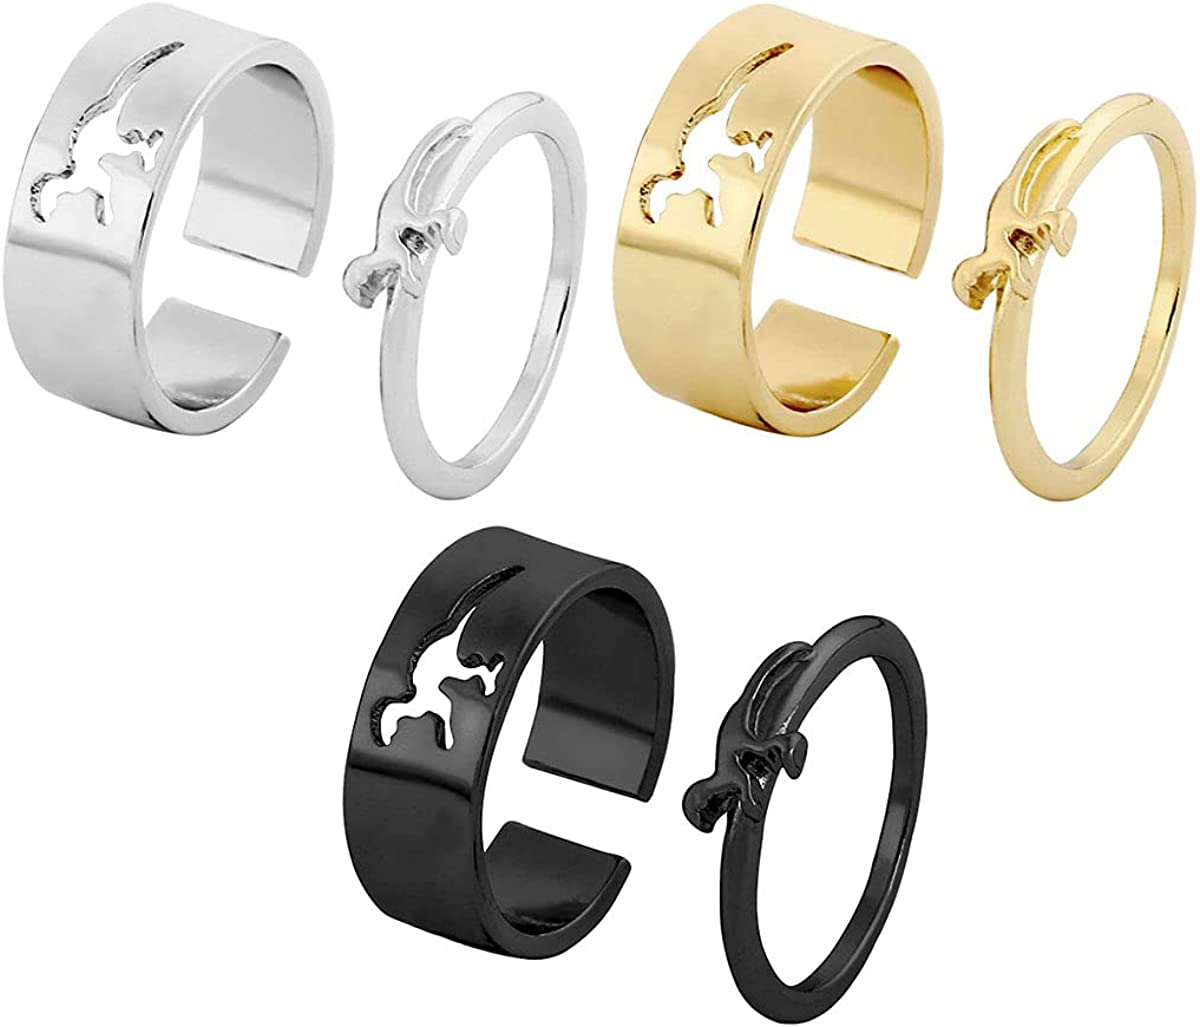 6 Pieces New color Matching Dinosaur Knuckle Purchase Set Couples Women for Rings